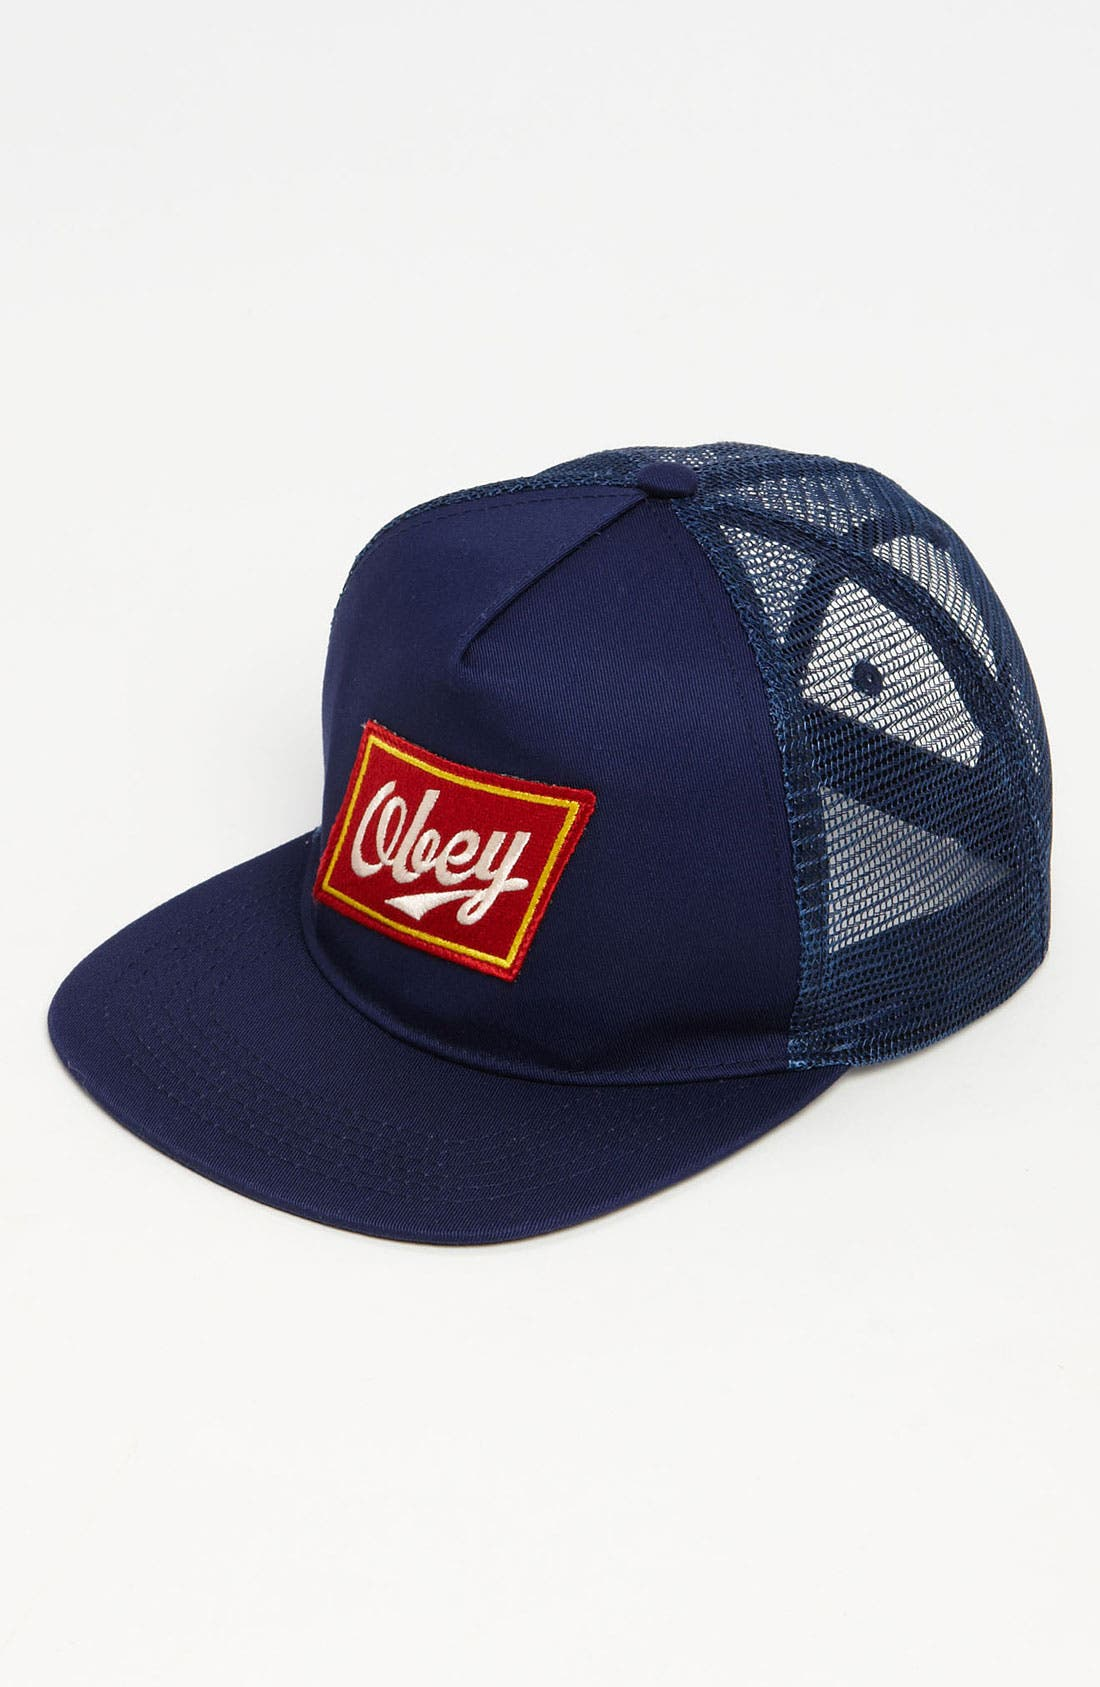 Main Image - Obey Trucker Hat